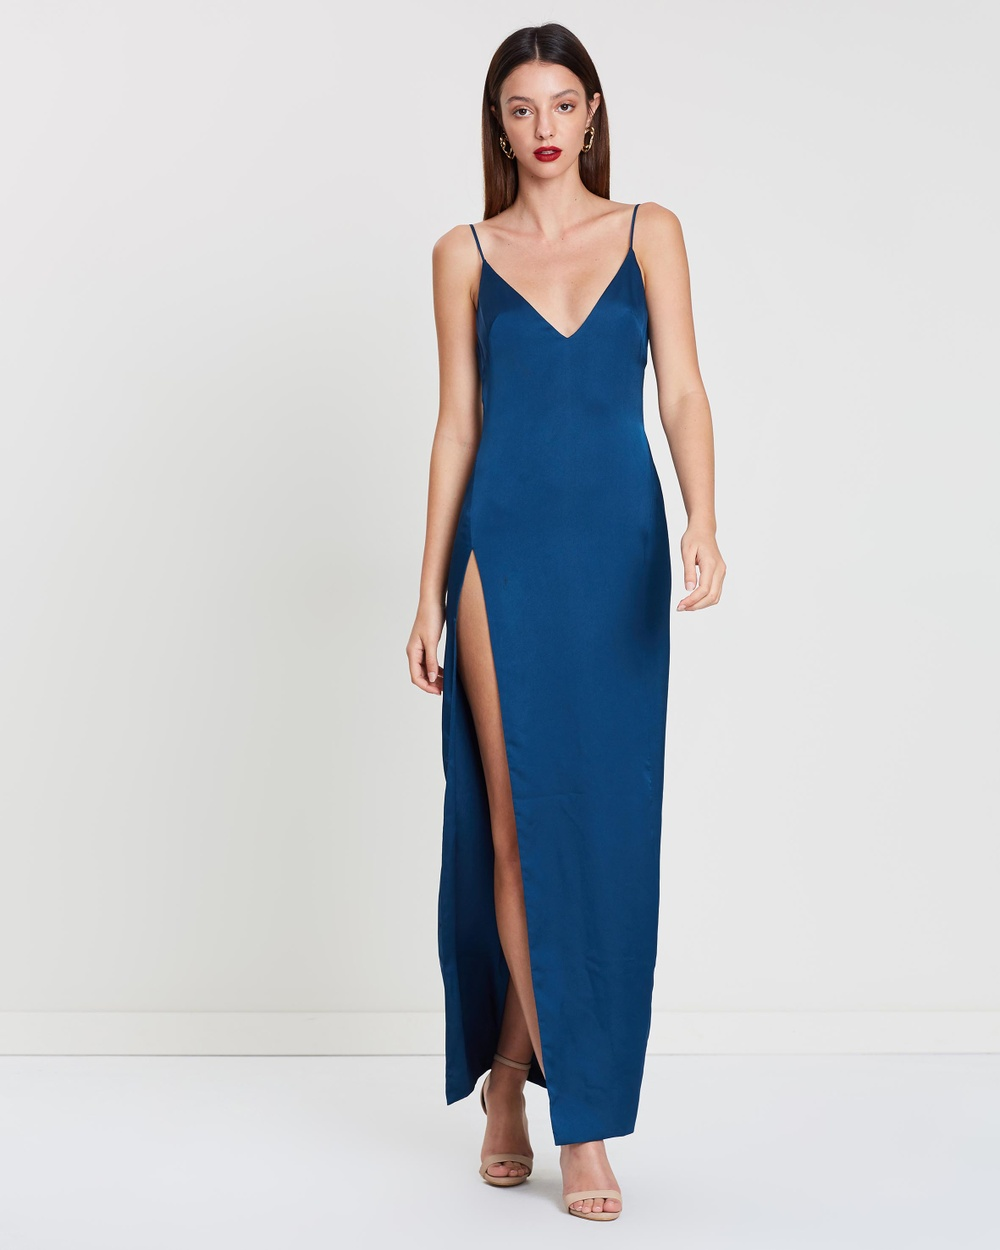 LEXI Cerulean Blue Akasa Dress